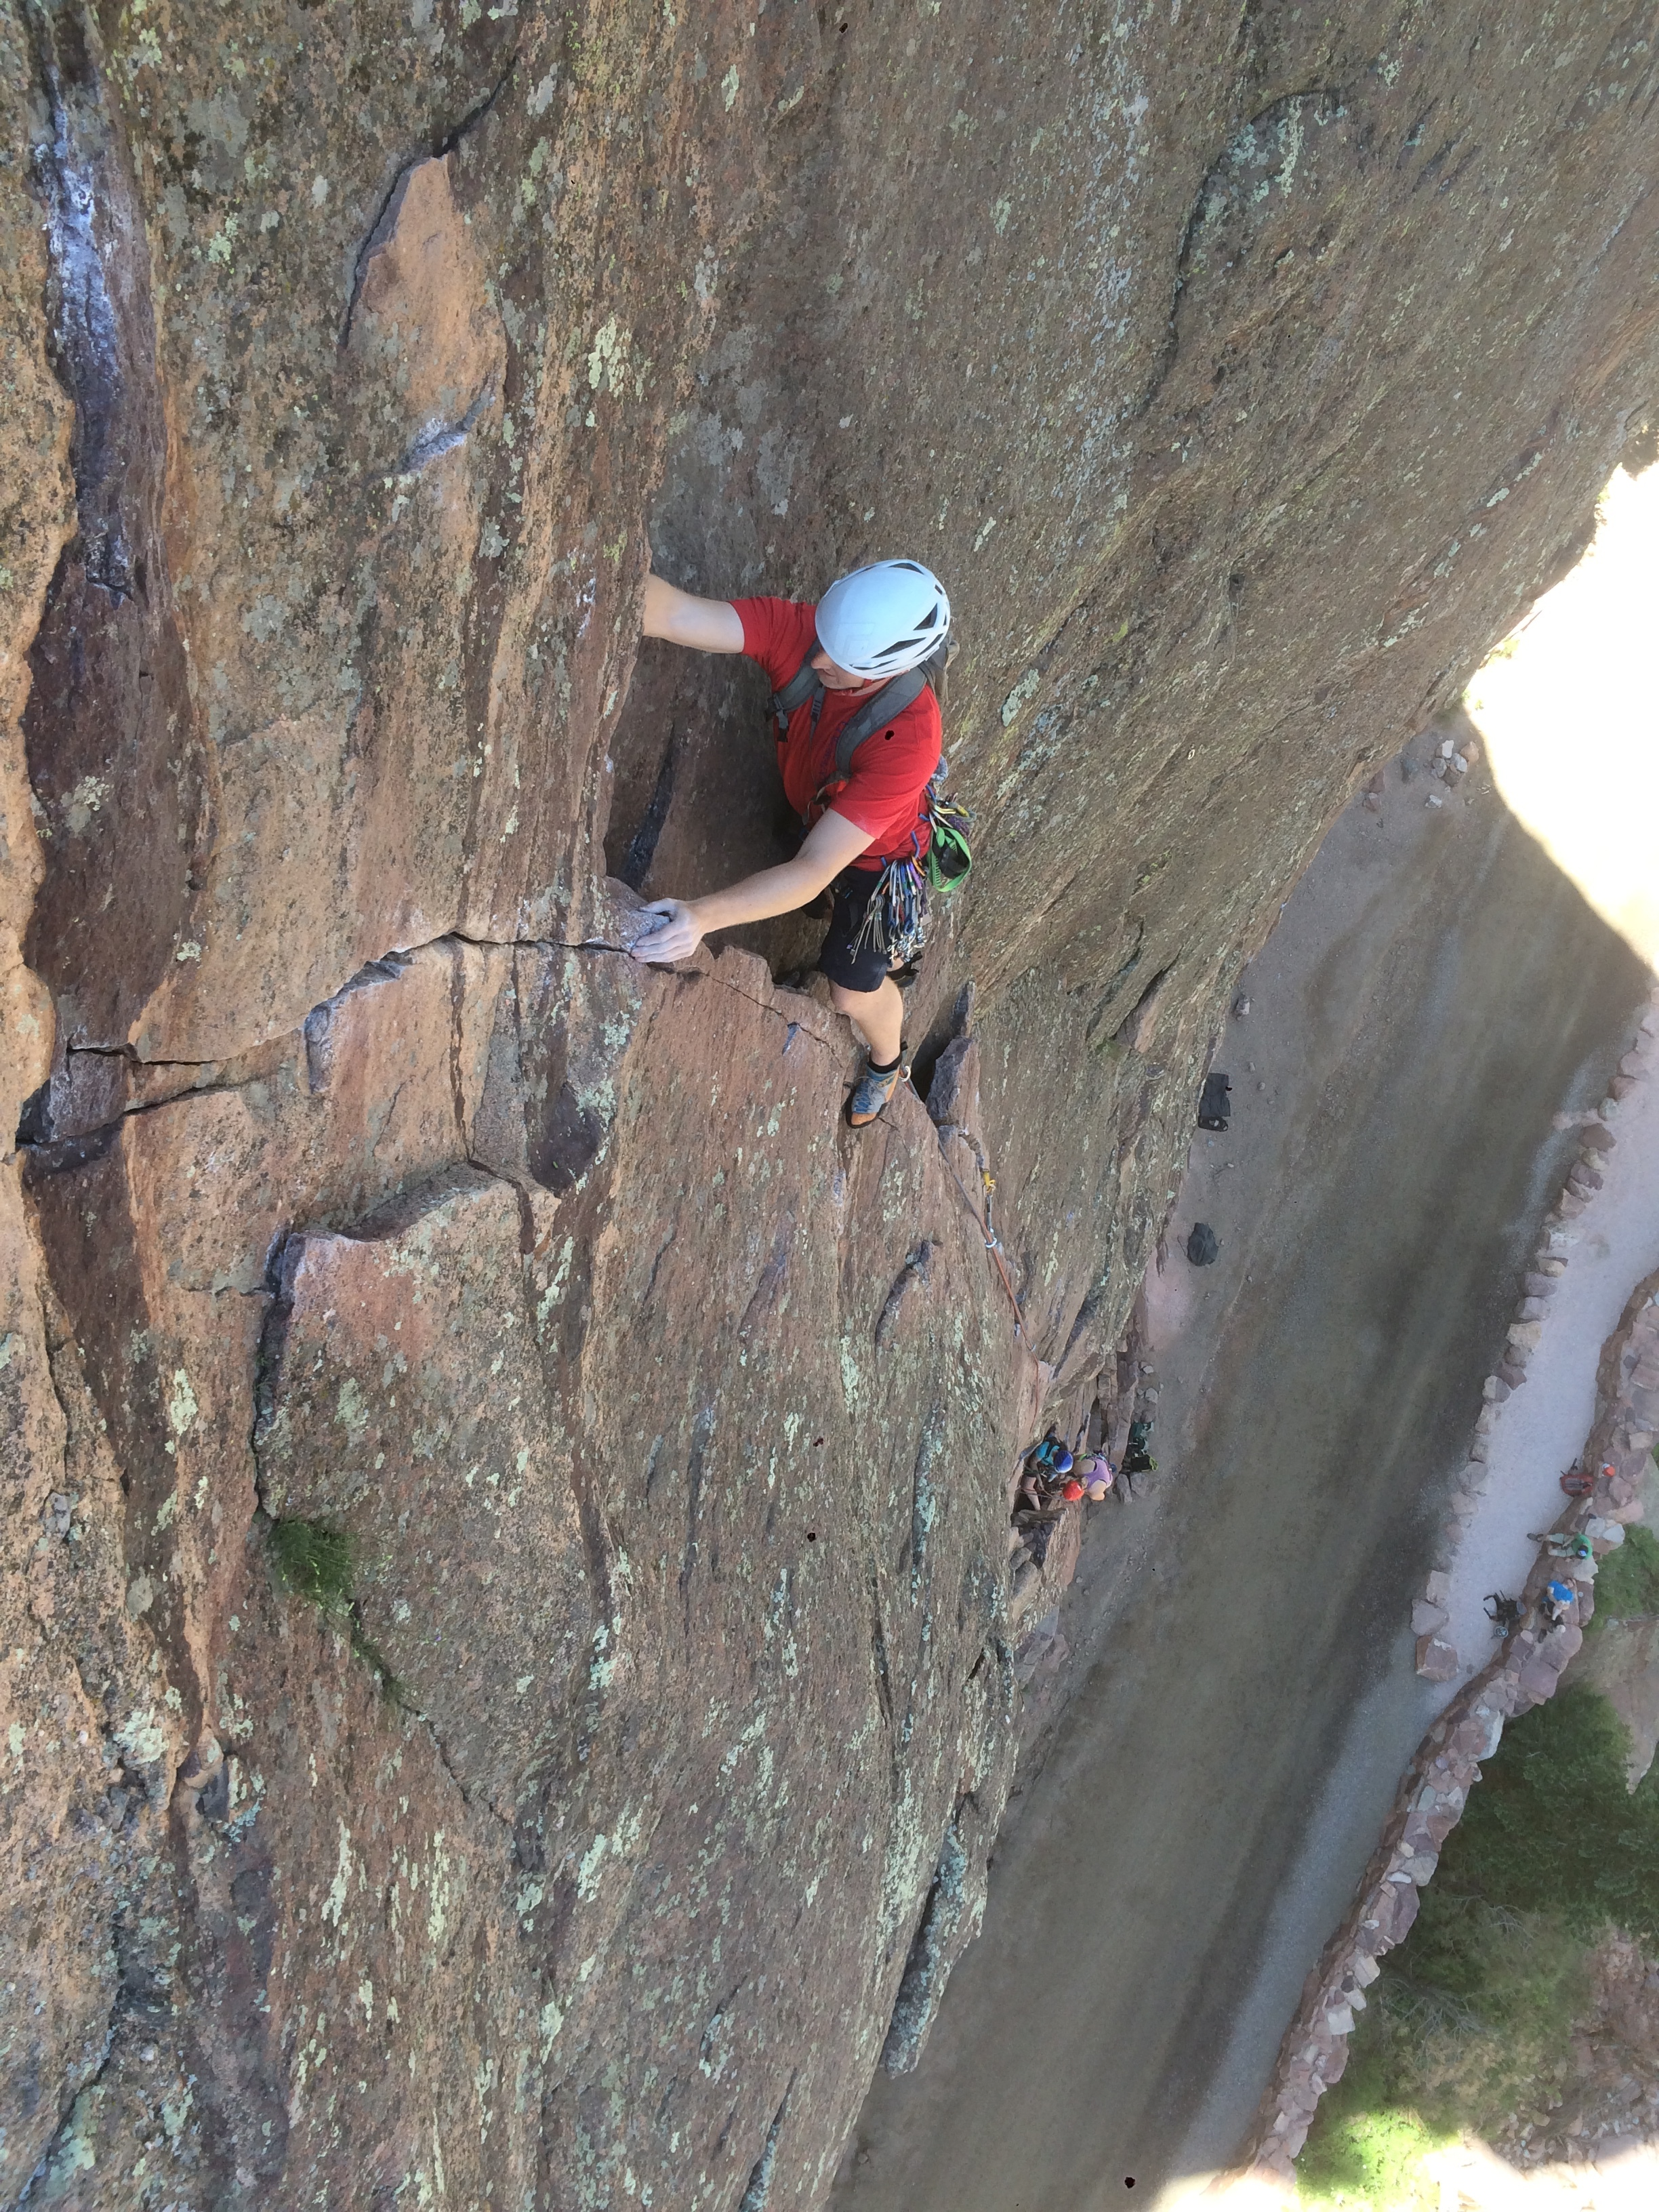 1st pitch of Bastille Crack